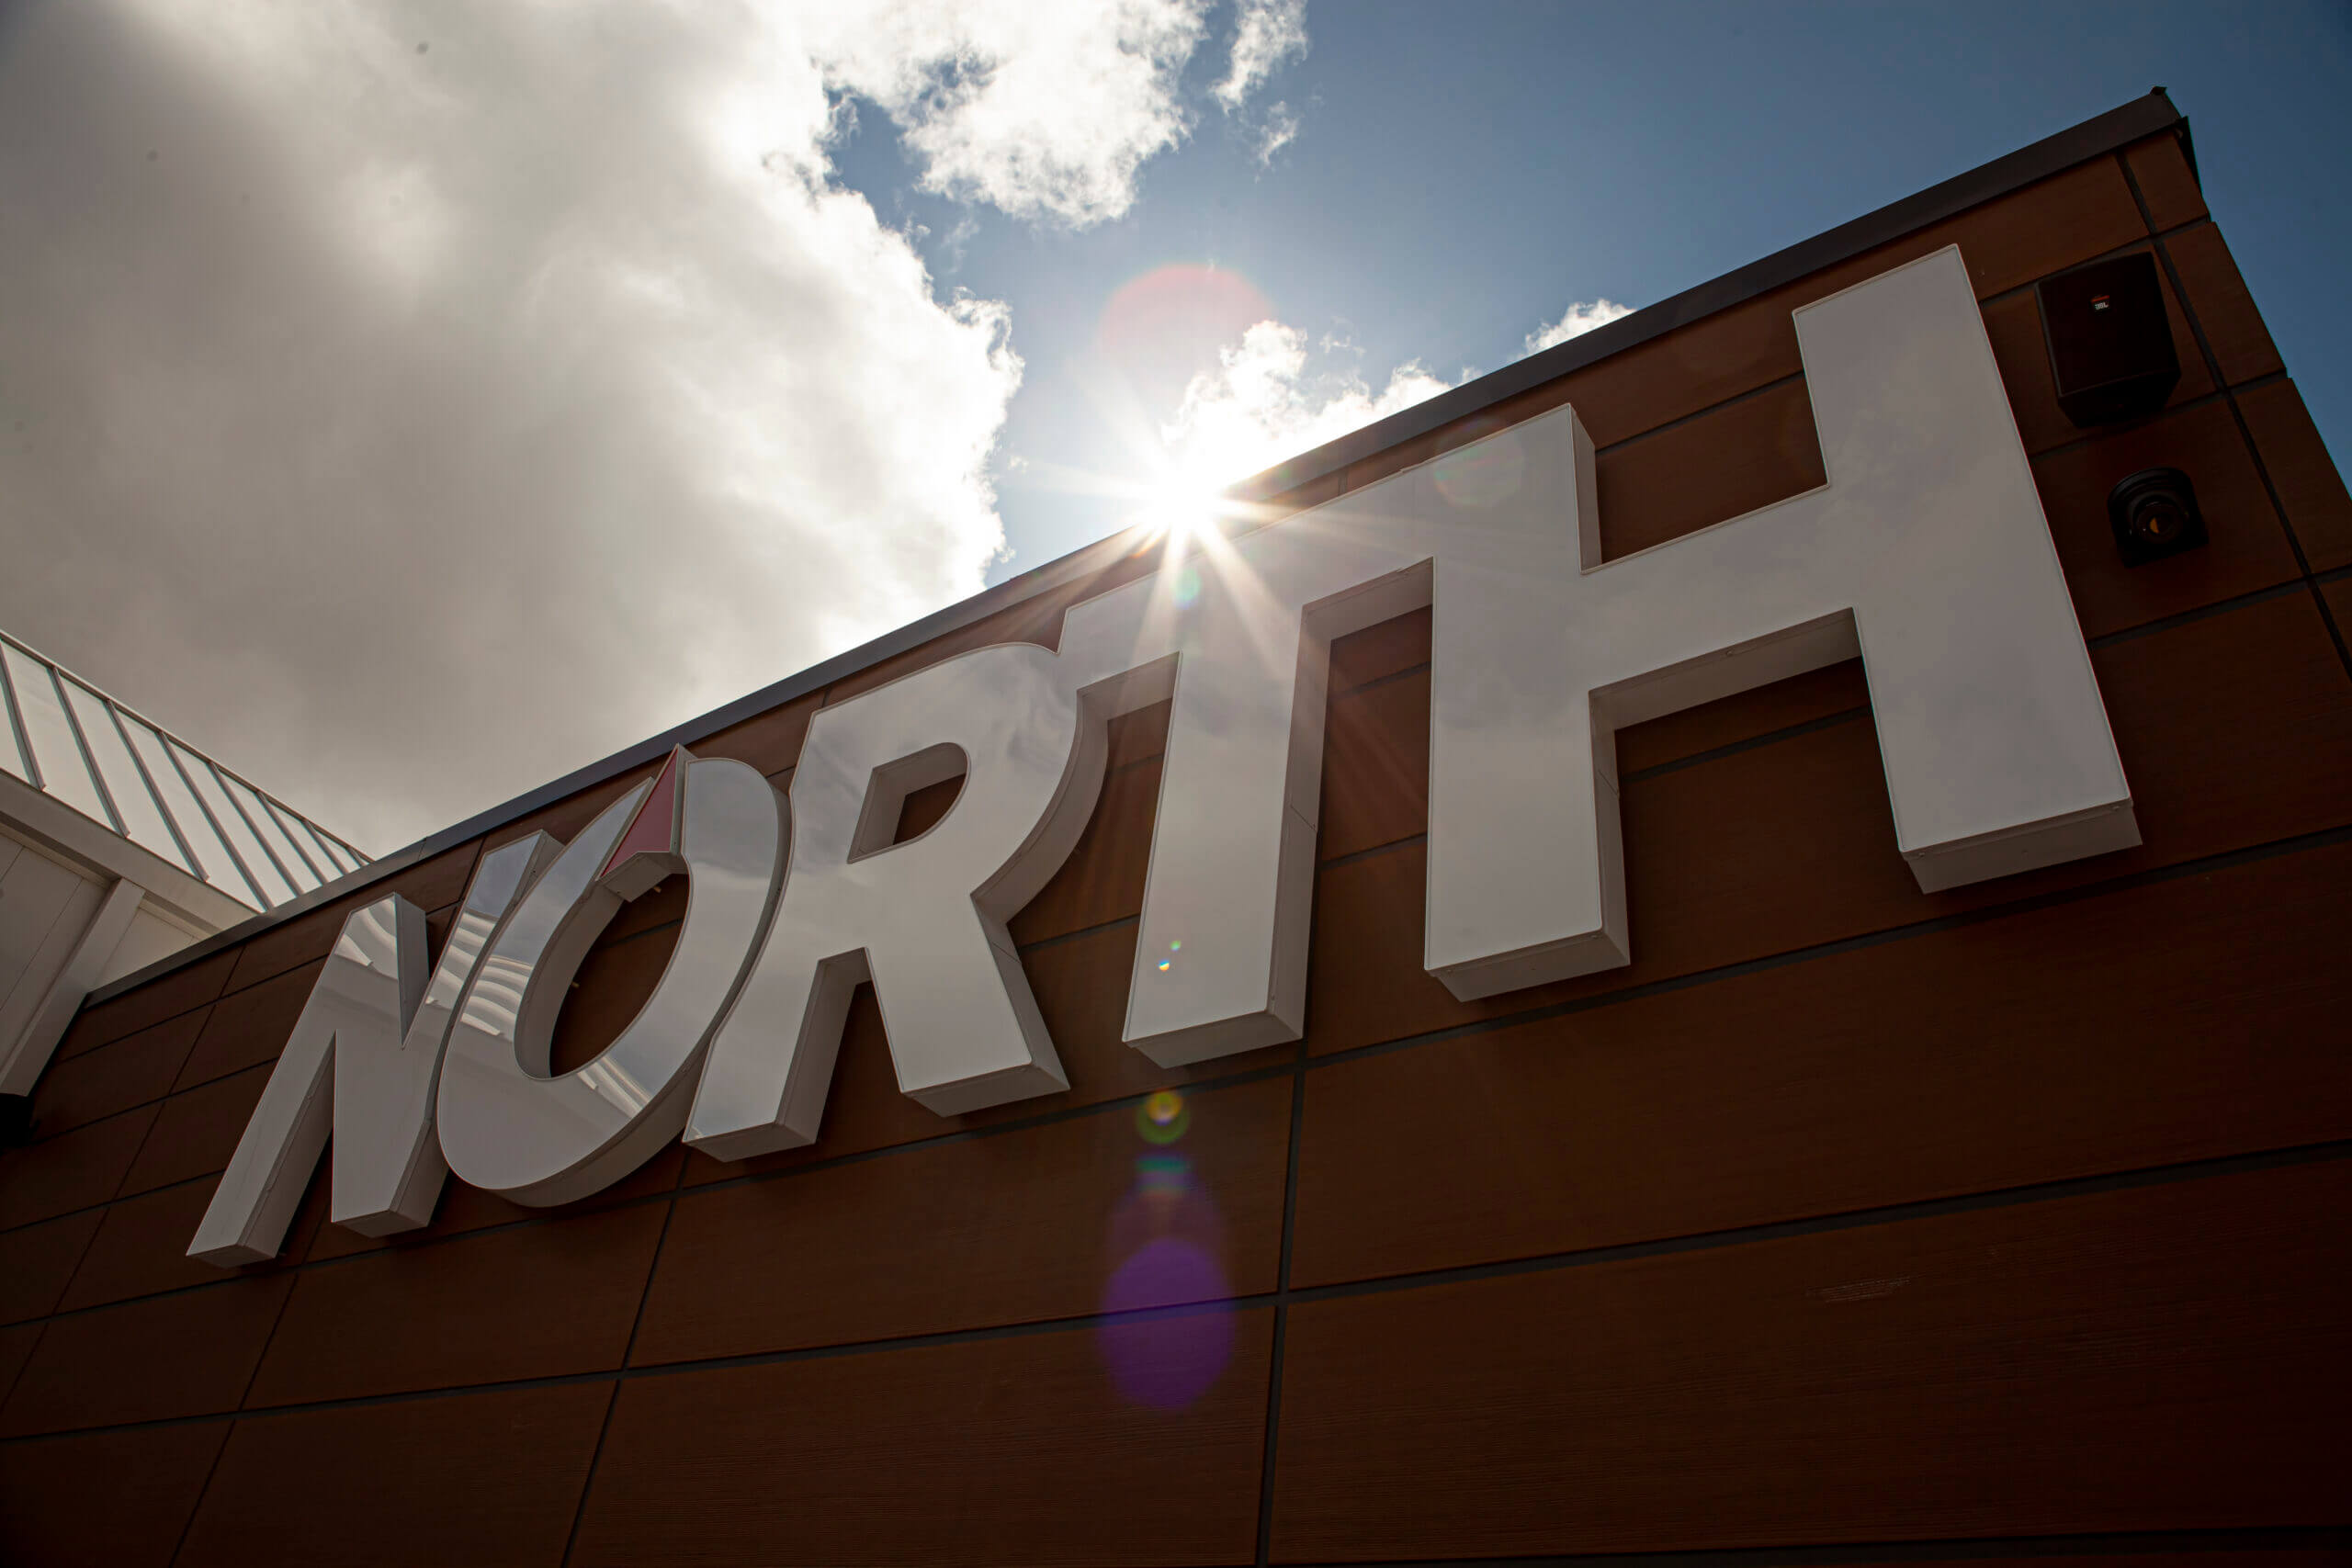 Join North for Our Grand Opening in Pevely, MO!